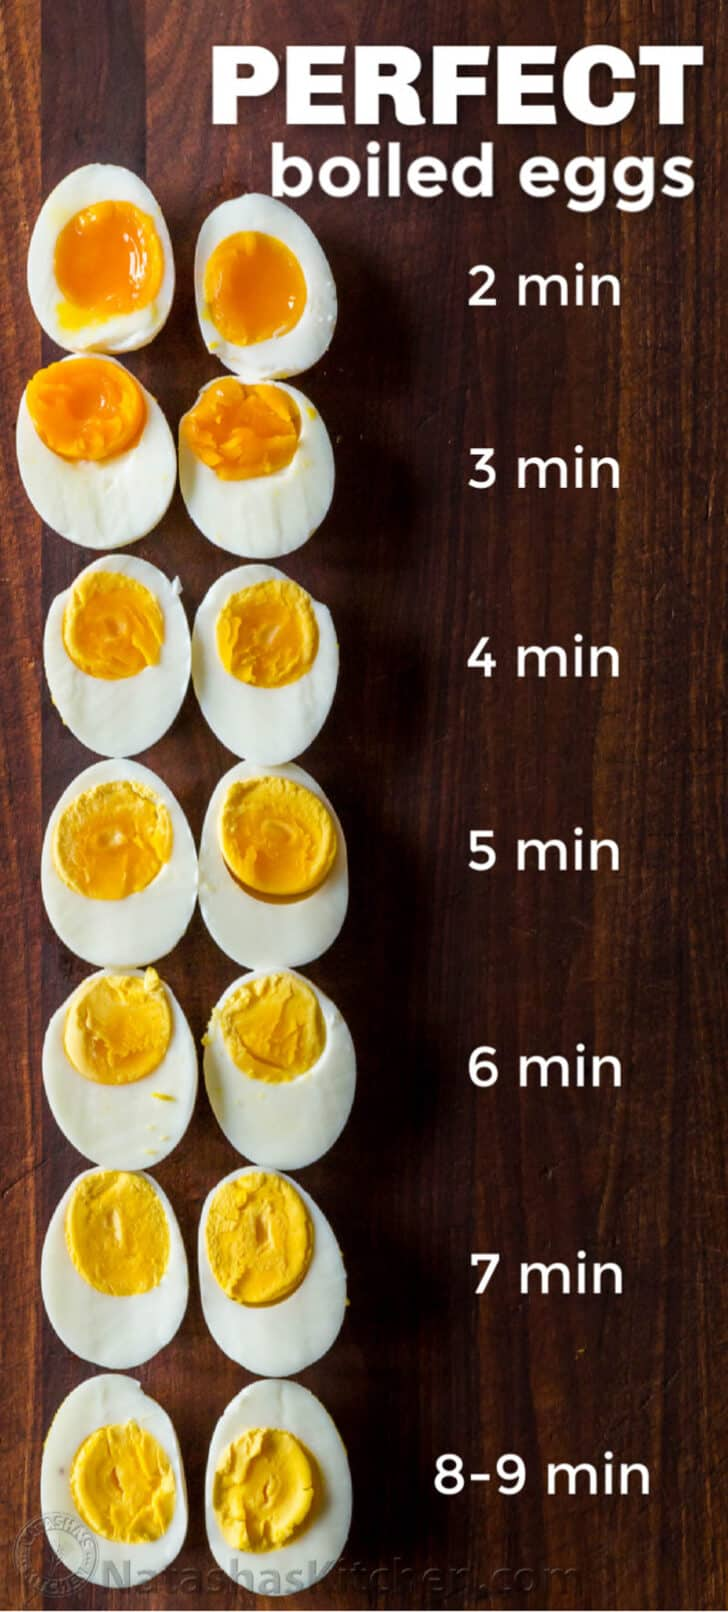 Boiled Eggs Timing Chart from soft boiled eggs to hard boiled eggs lined up in a row